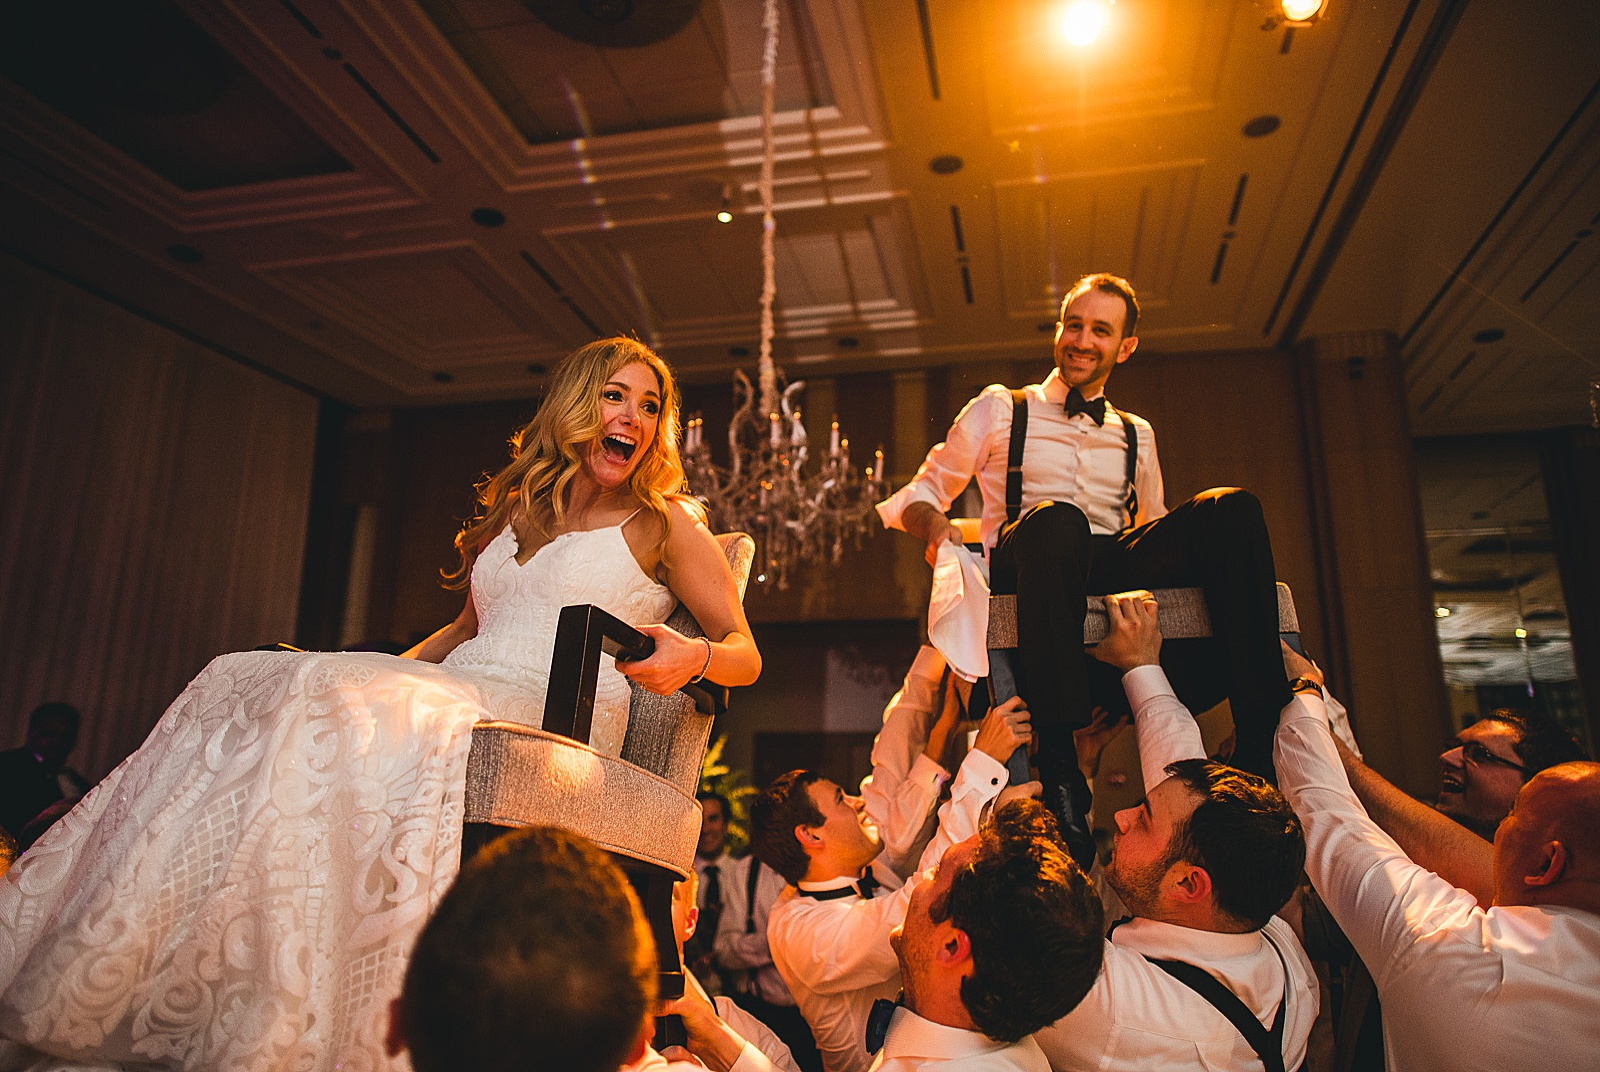 70 jewish hora wedding photos - Susie + Eric's Jewish Wedding at the Peninsula Hotel in Chicago